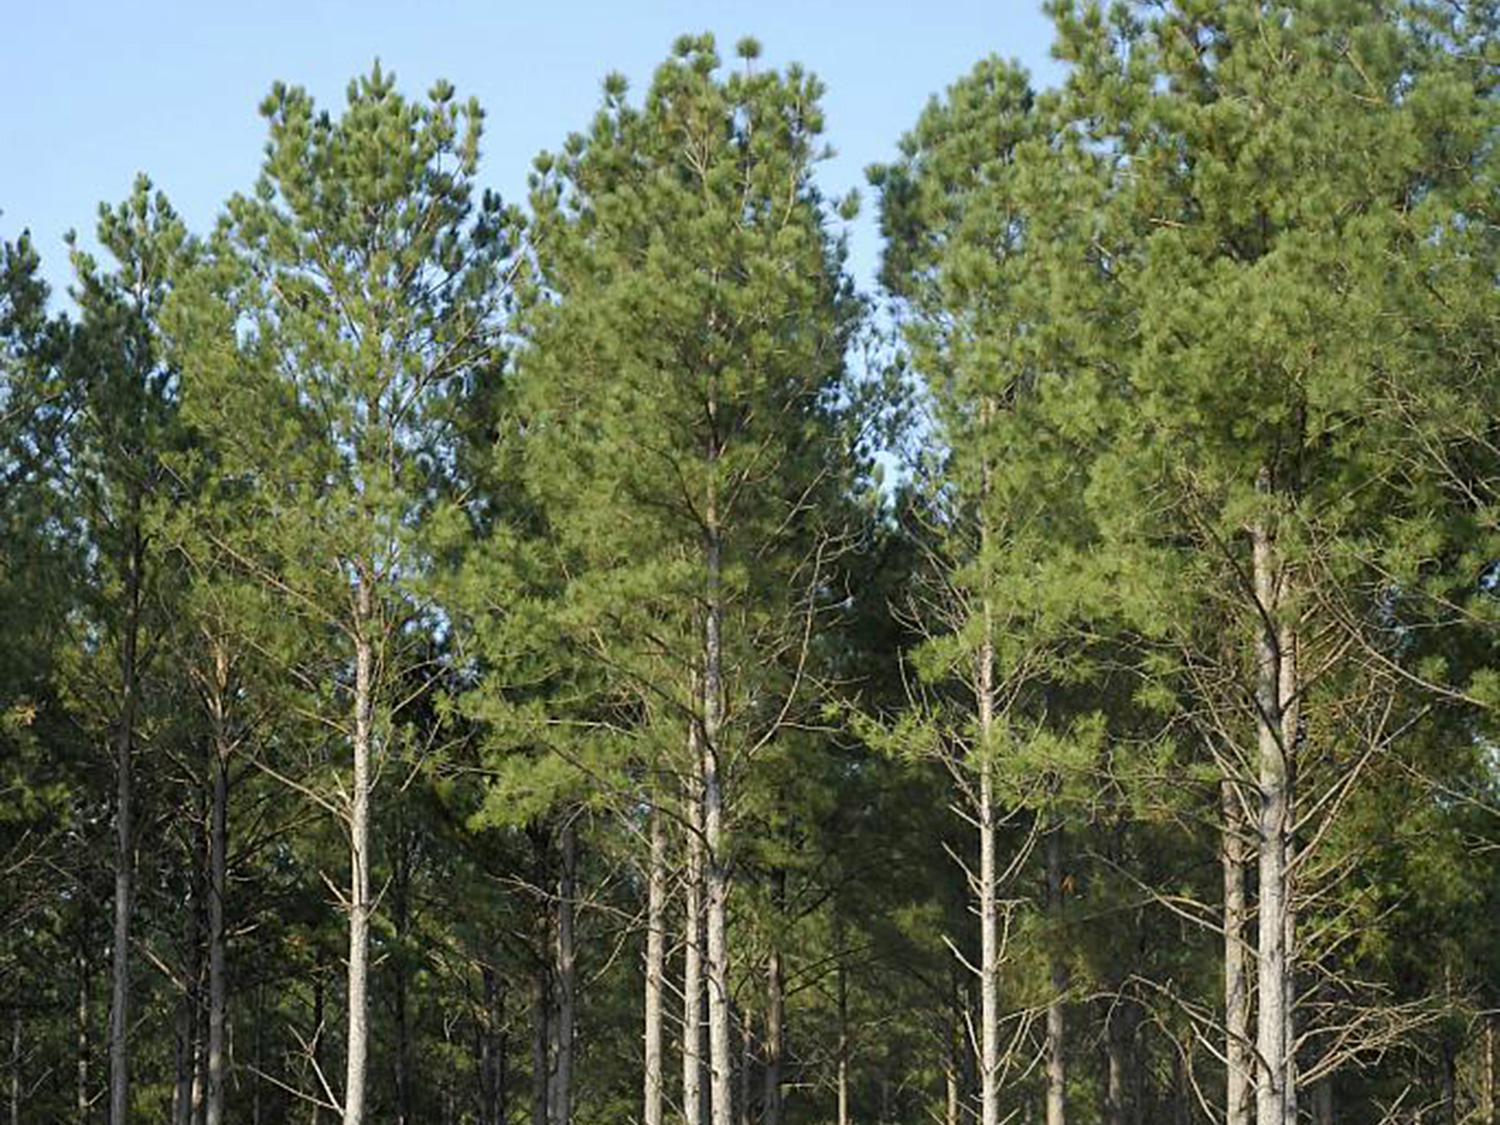 Mississippi's timber industry may see increasing demand for Southern pine lumber as new home construction rates continue to rise. This pine was growing in Monroe County on Sept. 12, 2013. (File photo by MSU Ag Communications/Linda Breazeale)